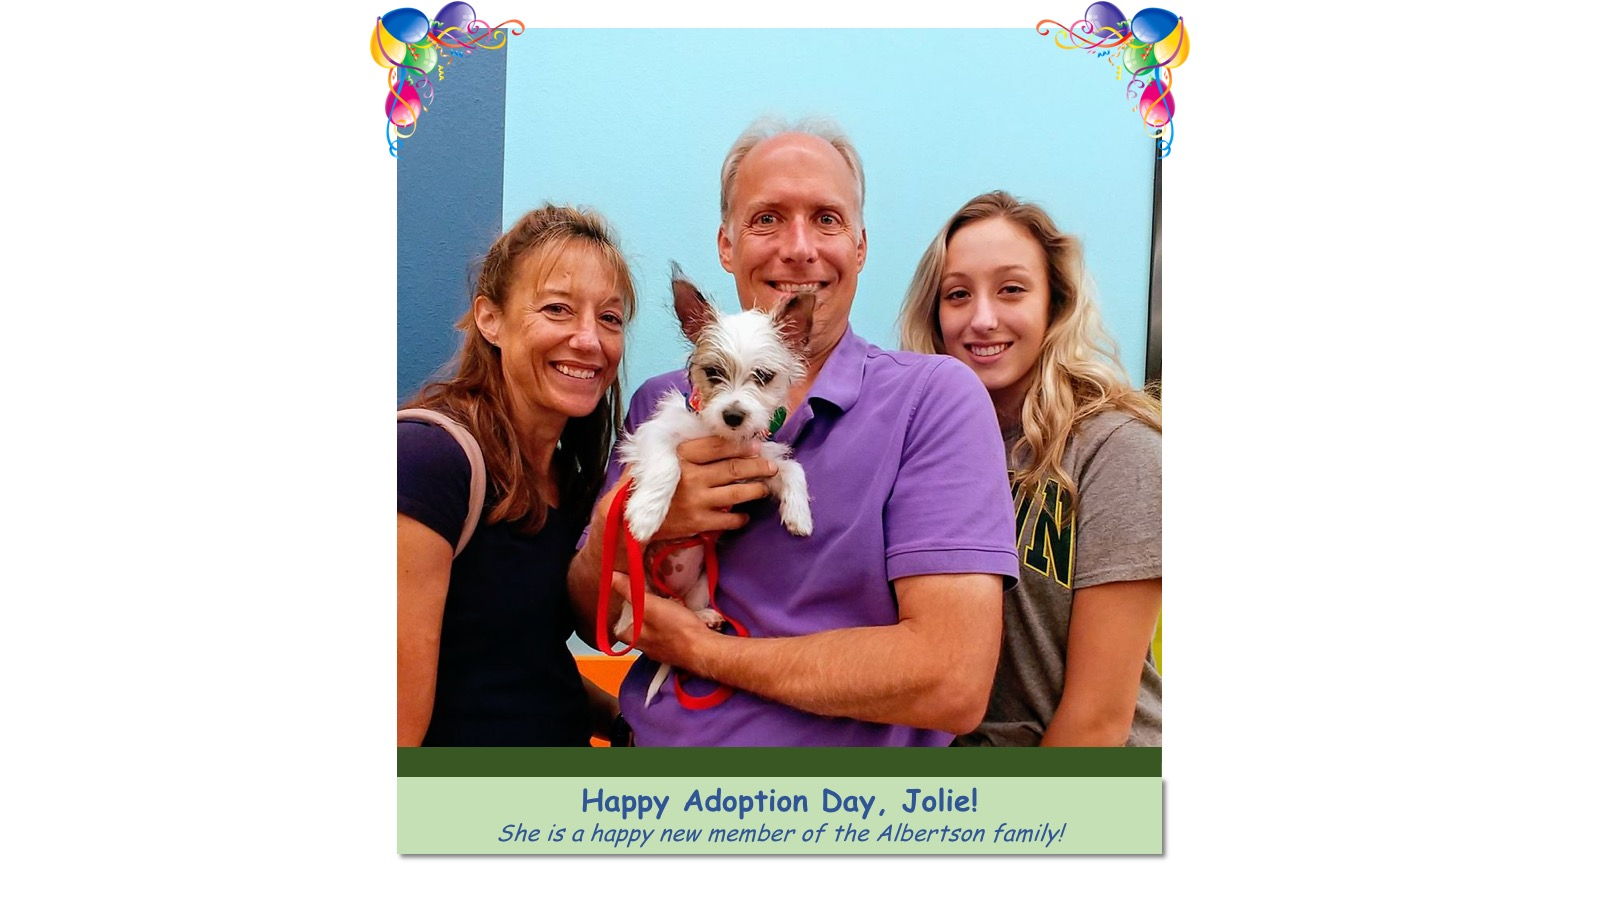 Jolie_Adoption_Photo_2018.jpg